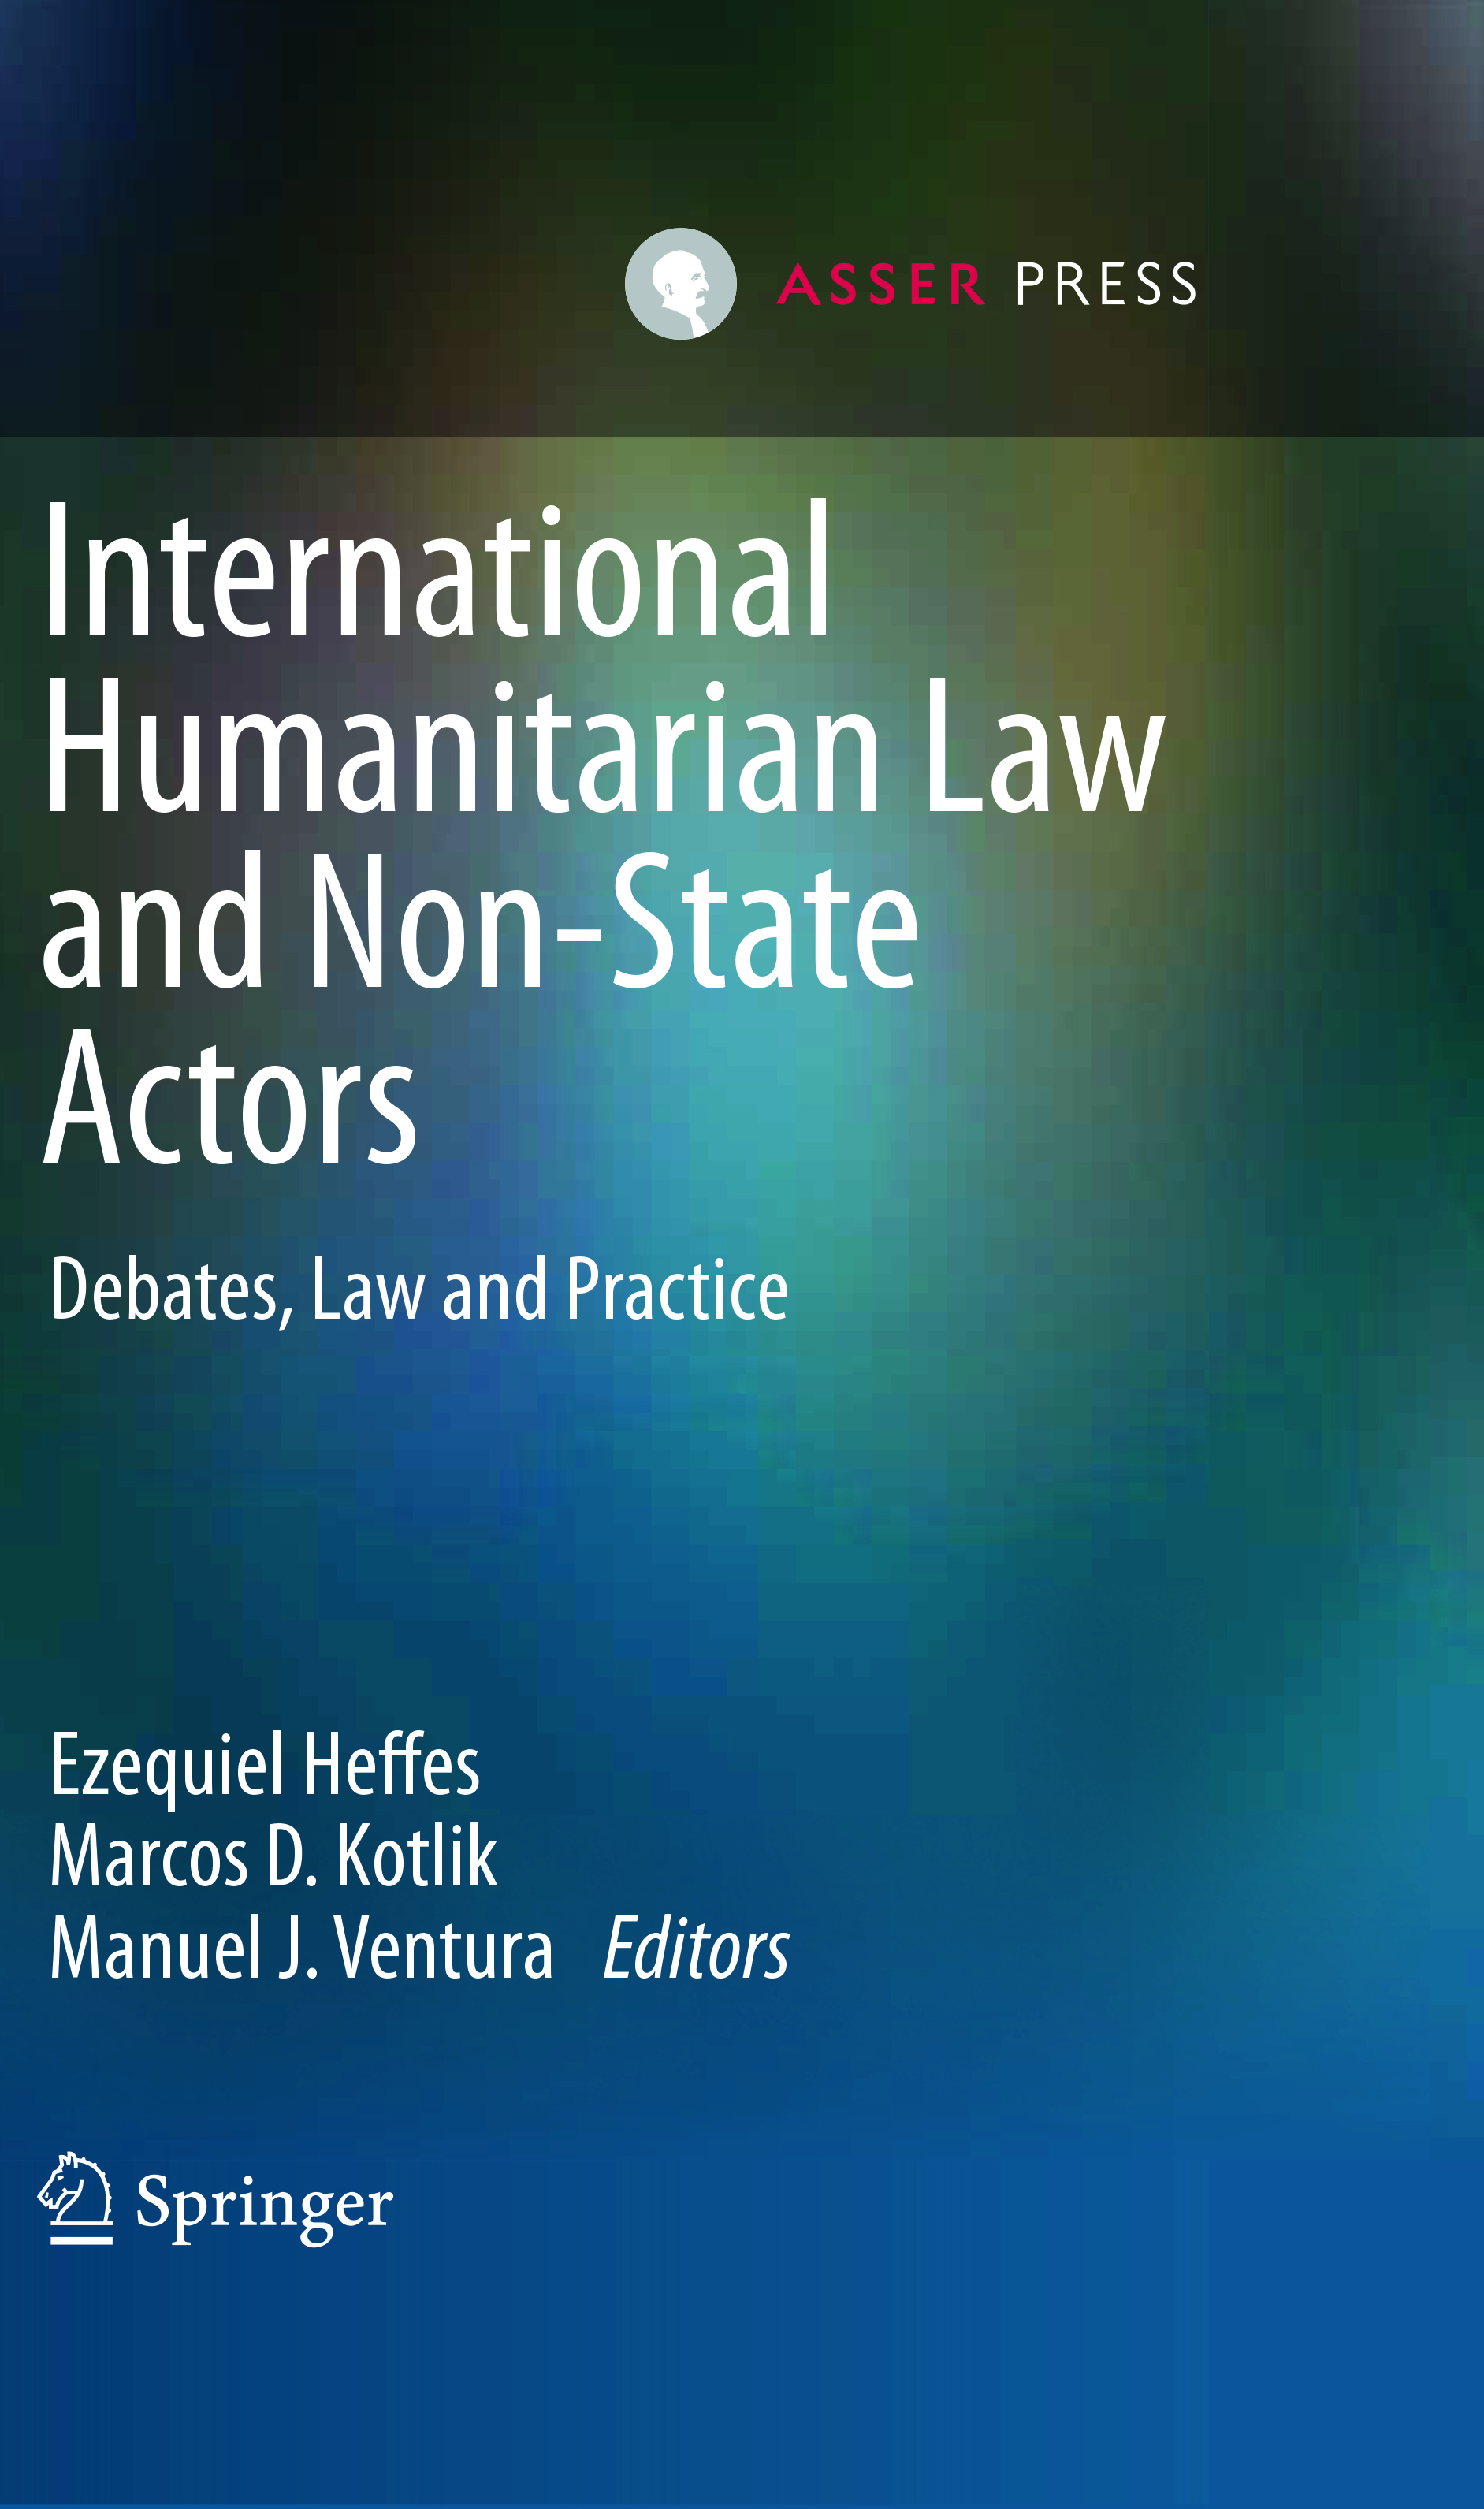 International Humanitarian Law and Non-State Actors - Debates, Law and Practice